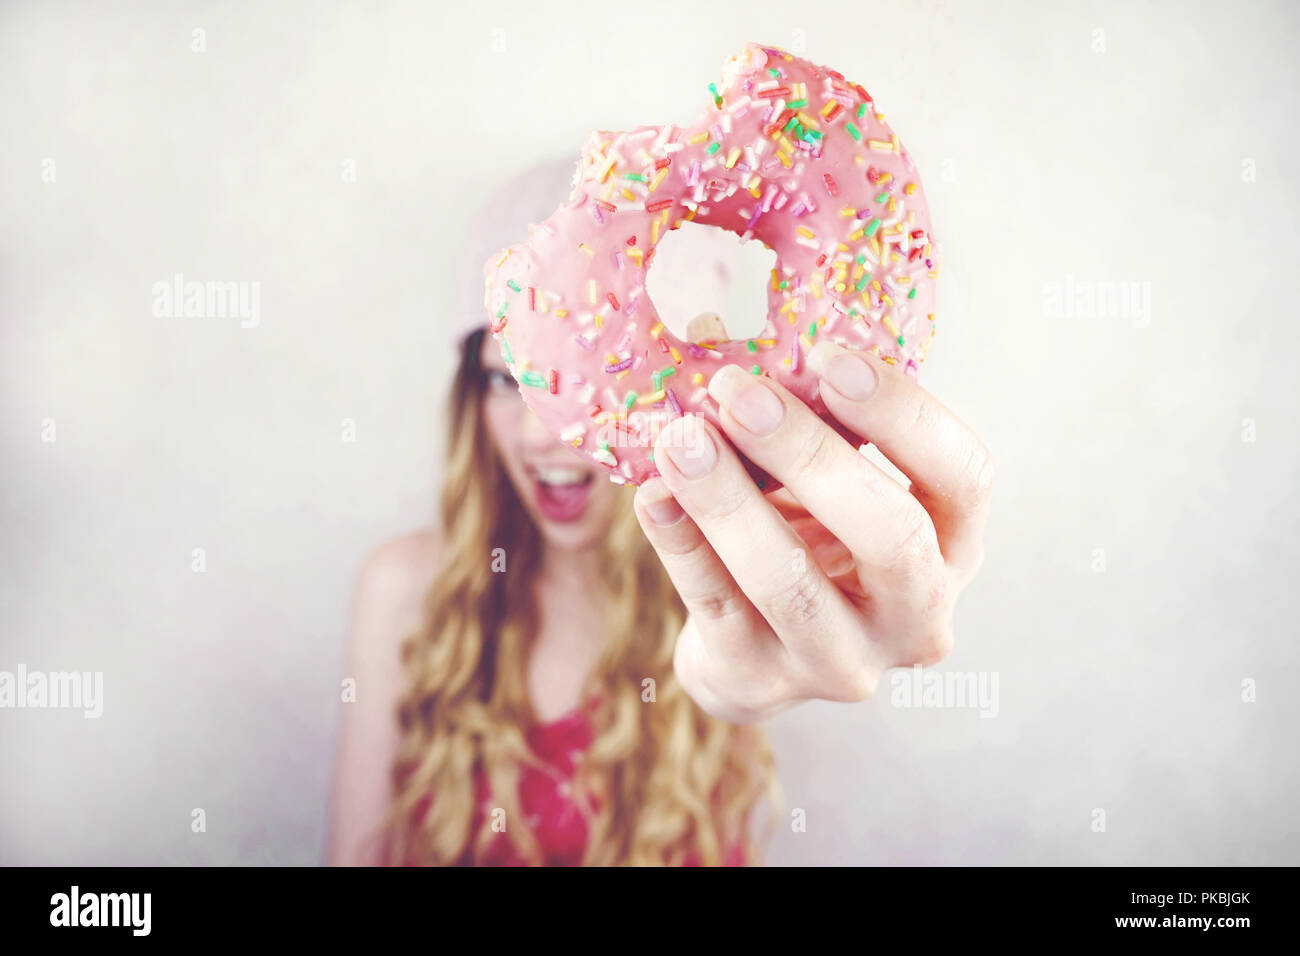 Portrait of a young and funny blonde woman eating a pink donut - Stock Image